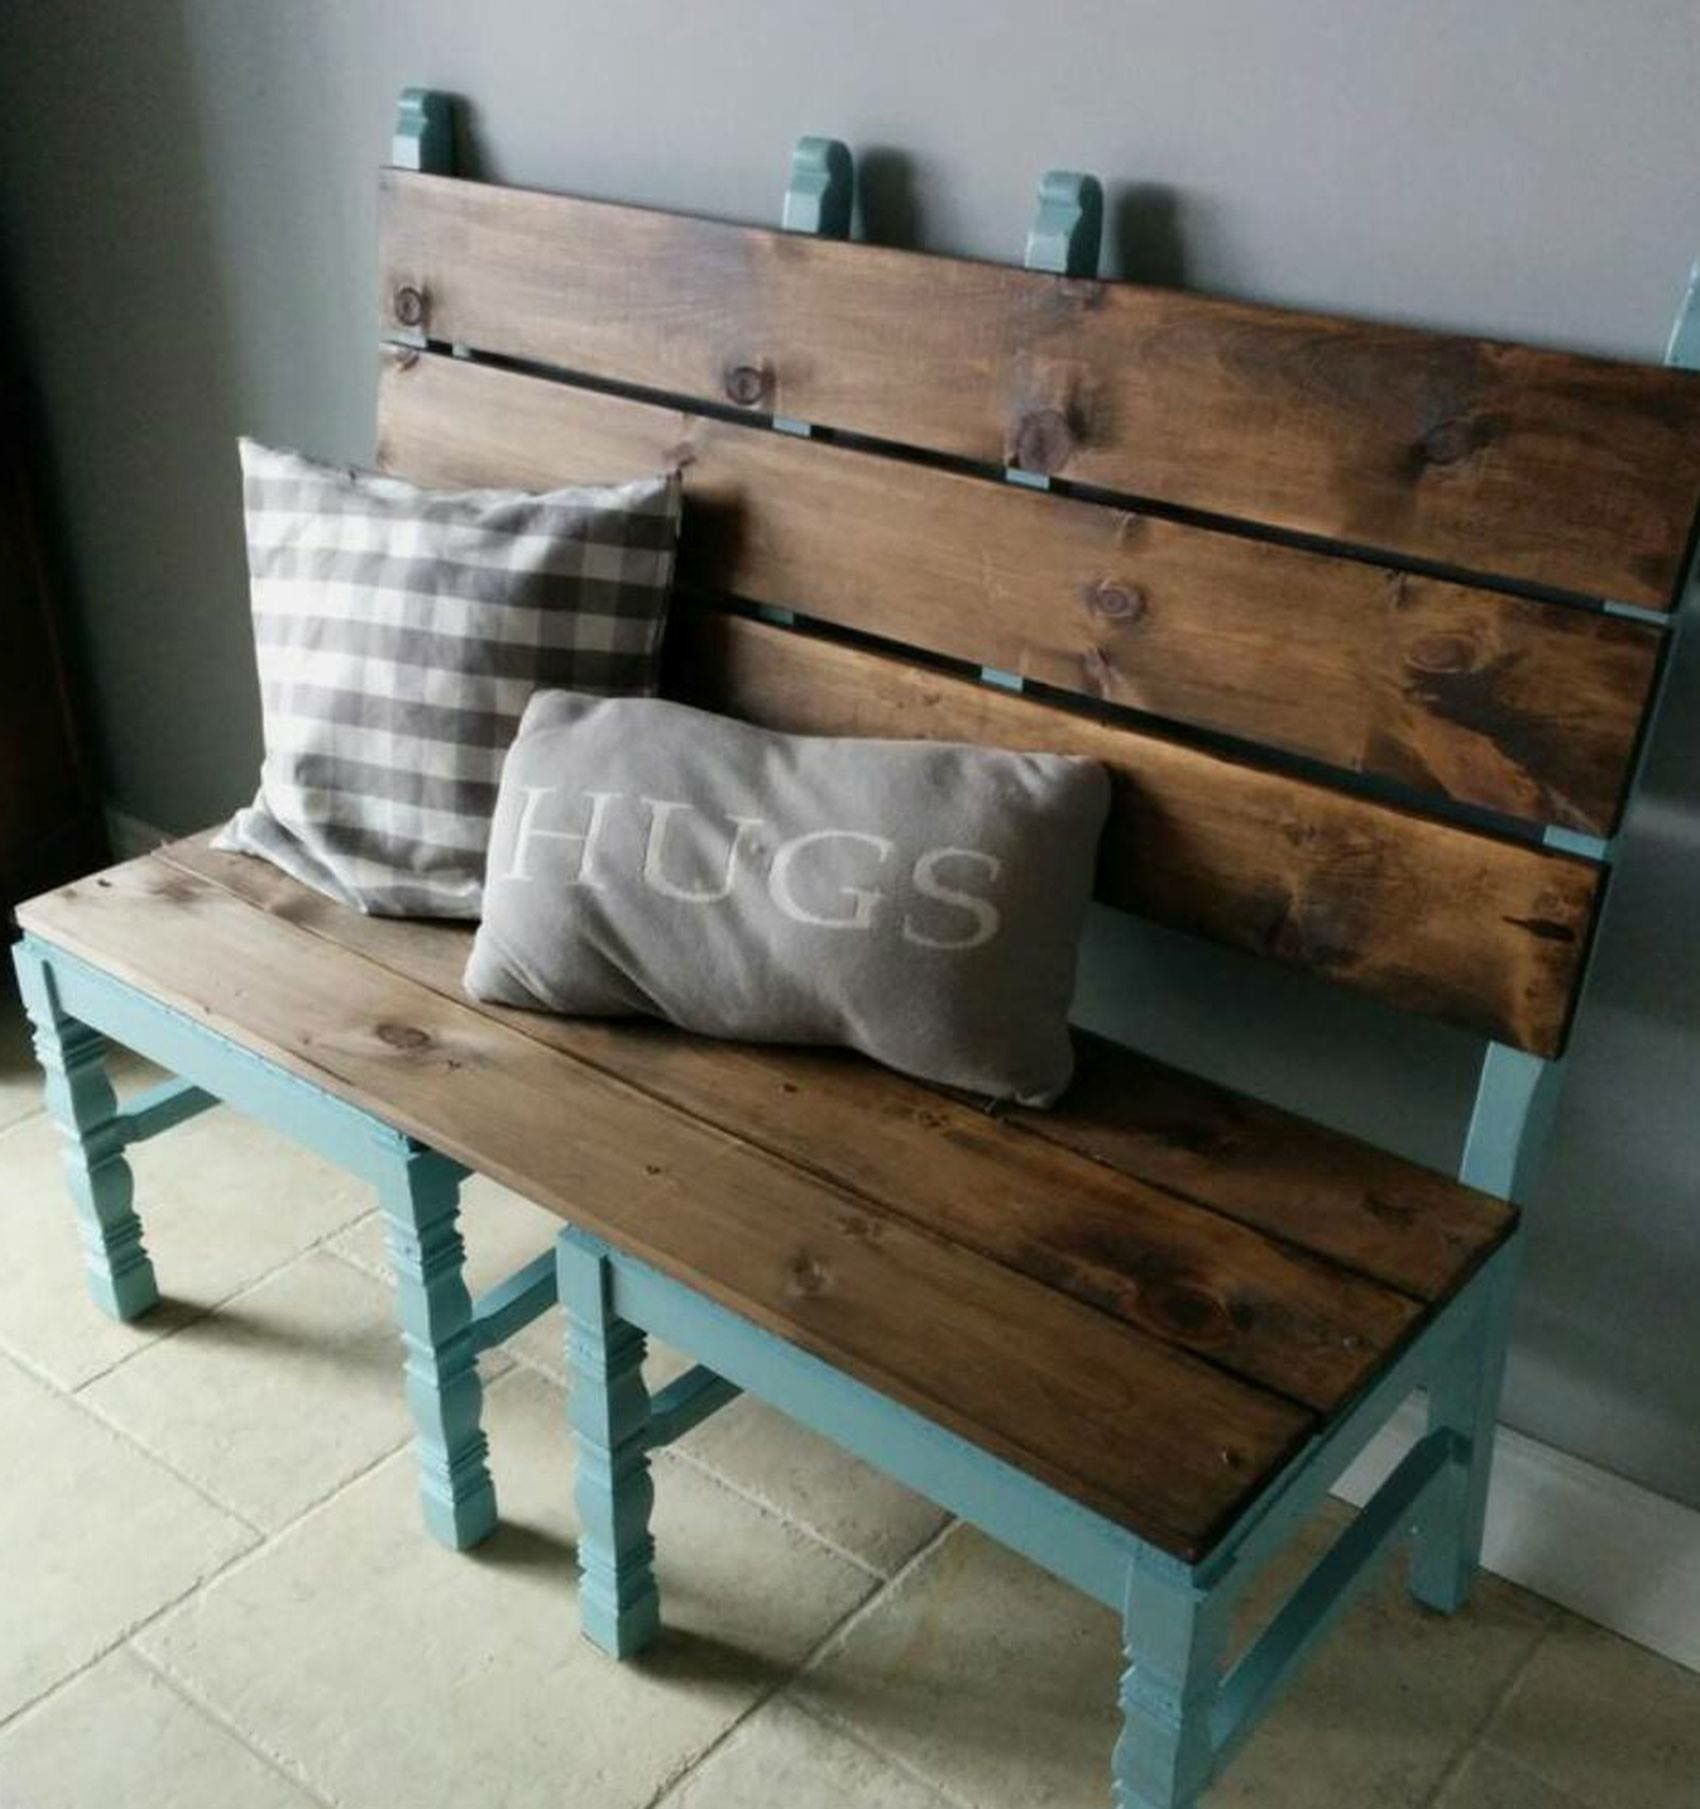 Miraculous Neat Bench Made Using Two Chairs For The Home In 2019 Uwap Interior Chair Design Uwaporg